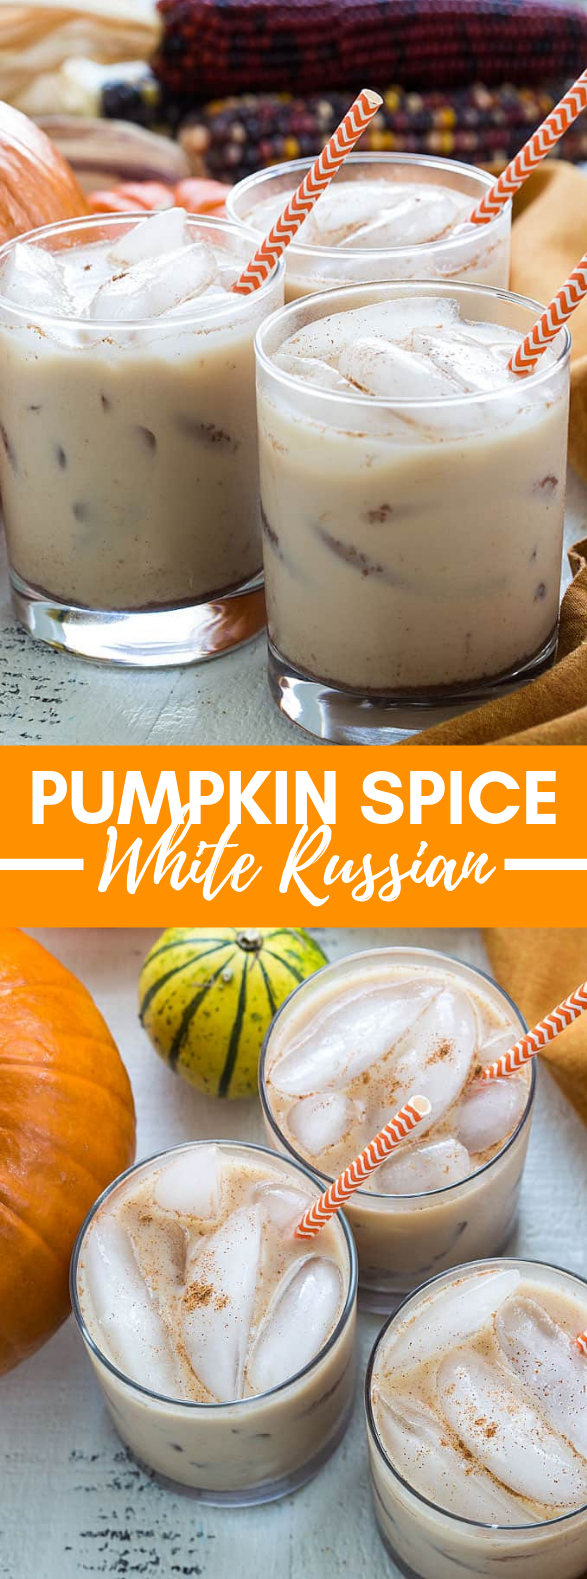 PUMPKIN SPICE WHITE RUSSIANS #drinks #falldrink #thanksgivingdrinksalcohol